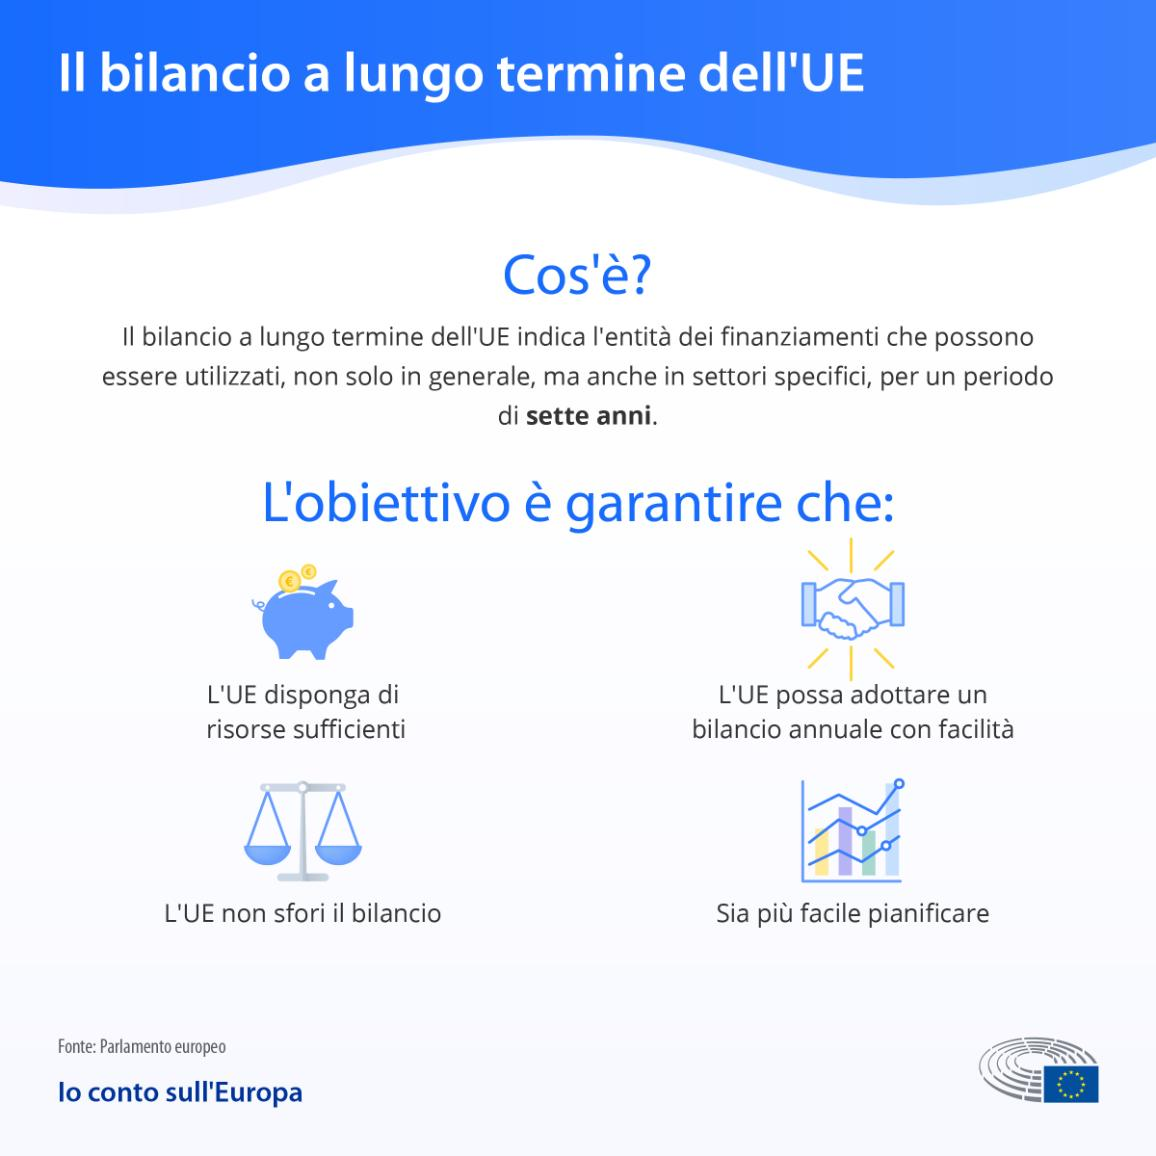 Infographic explaining what the EU's long term budget is